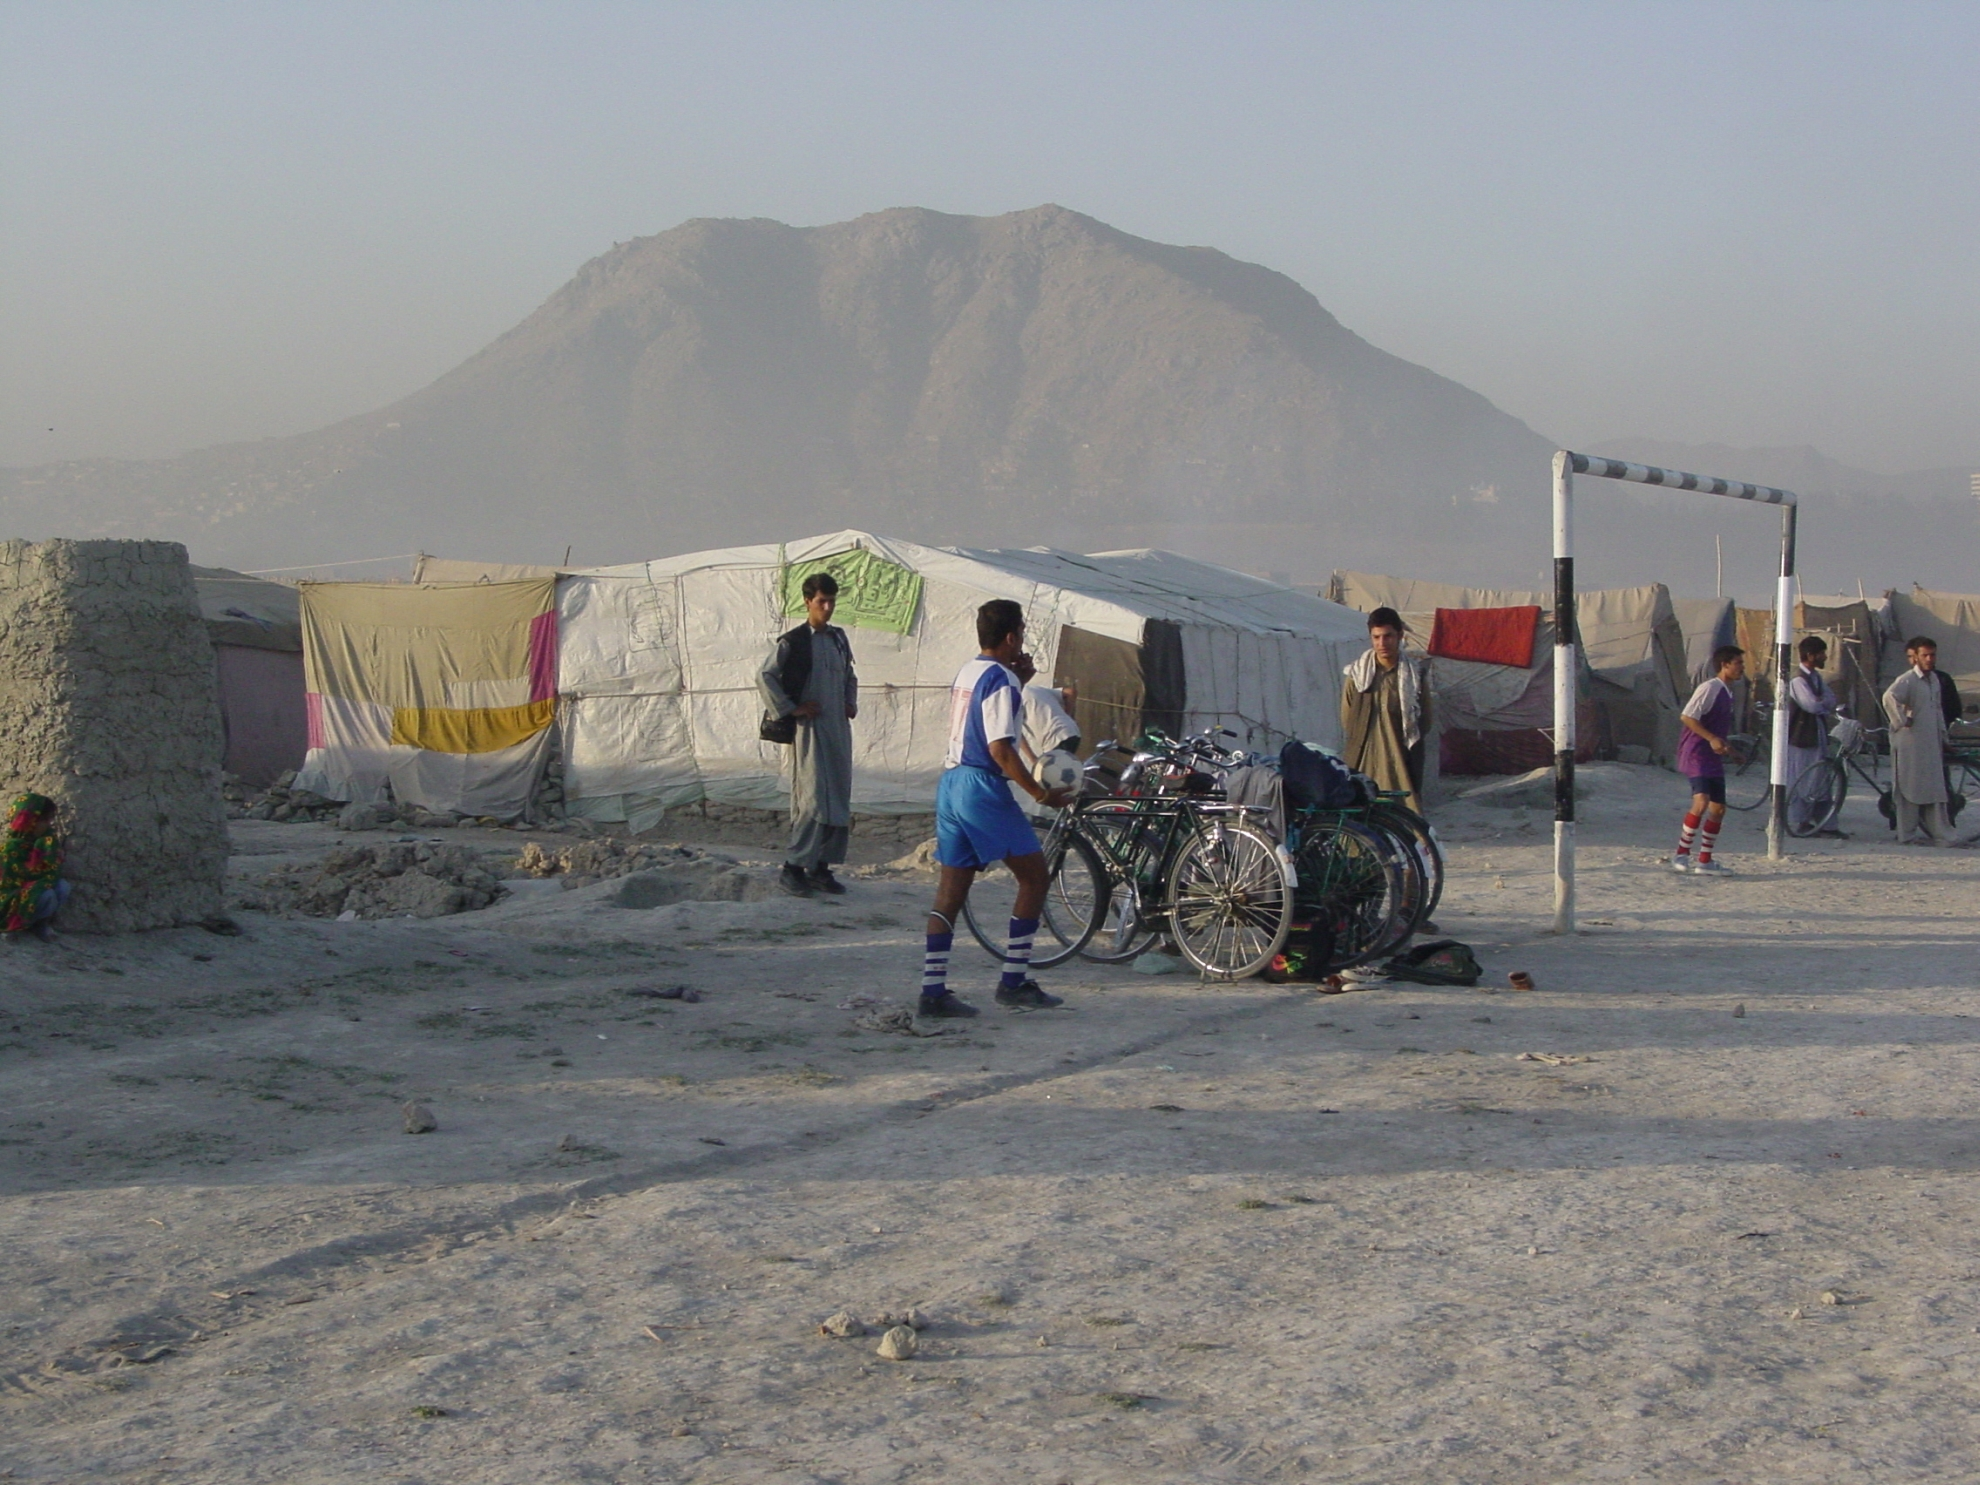 Football is a popular pastime in Afghanistan – not least in the refugee camp. Photo: Jens Kjær Jensen, 2003